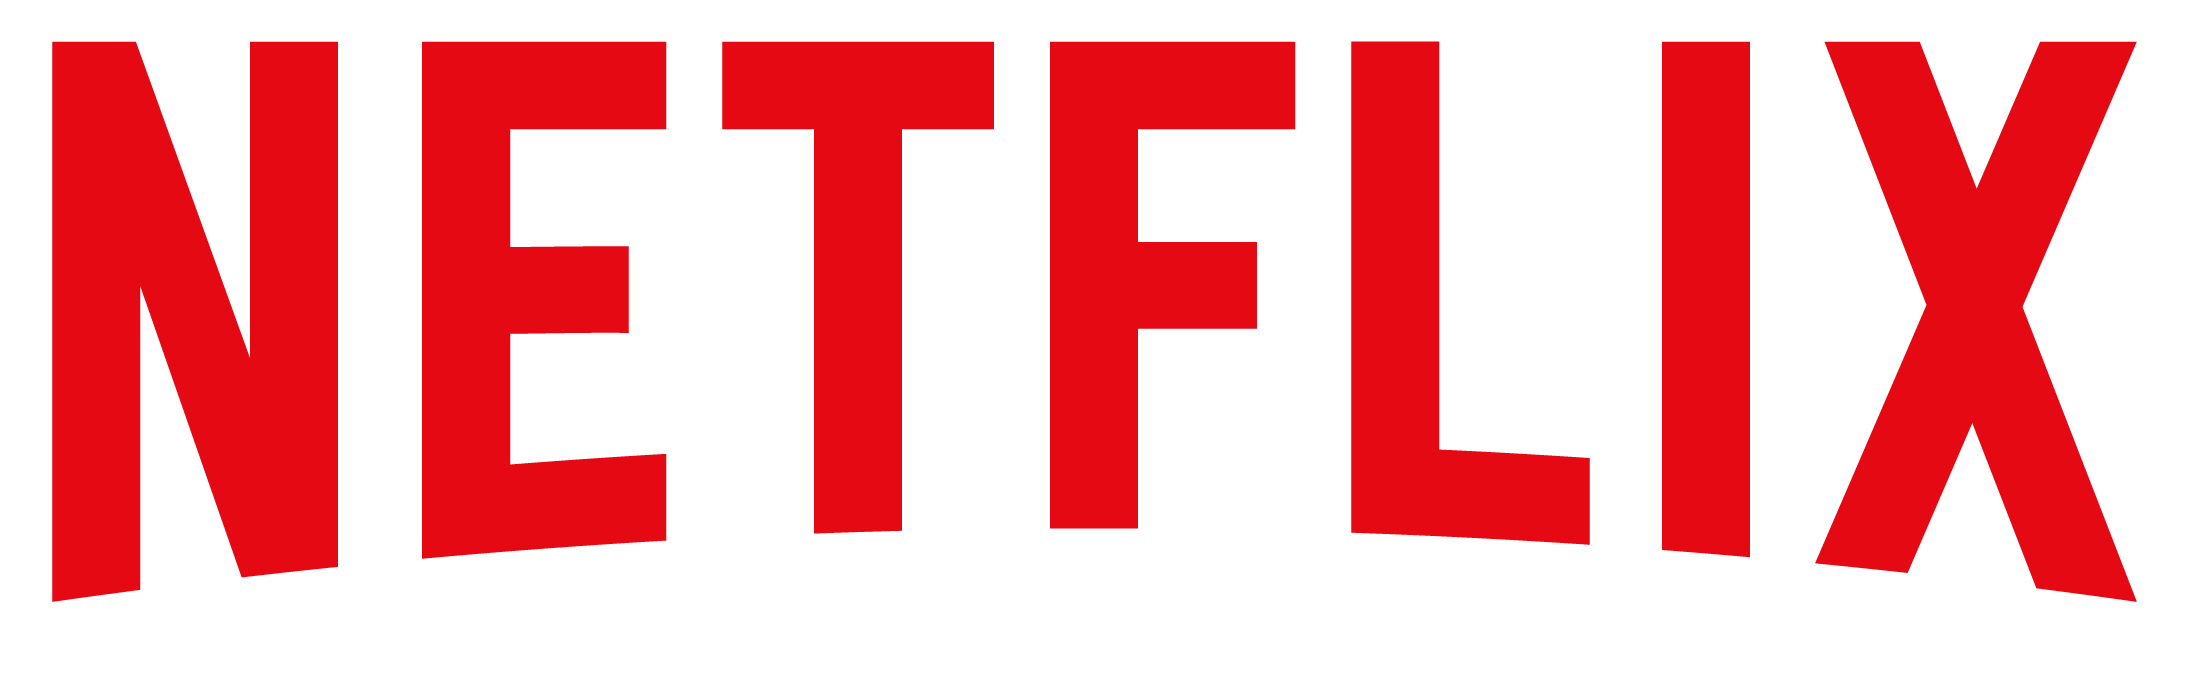 Netflix drawing cool. Logo png free transparent